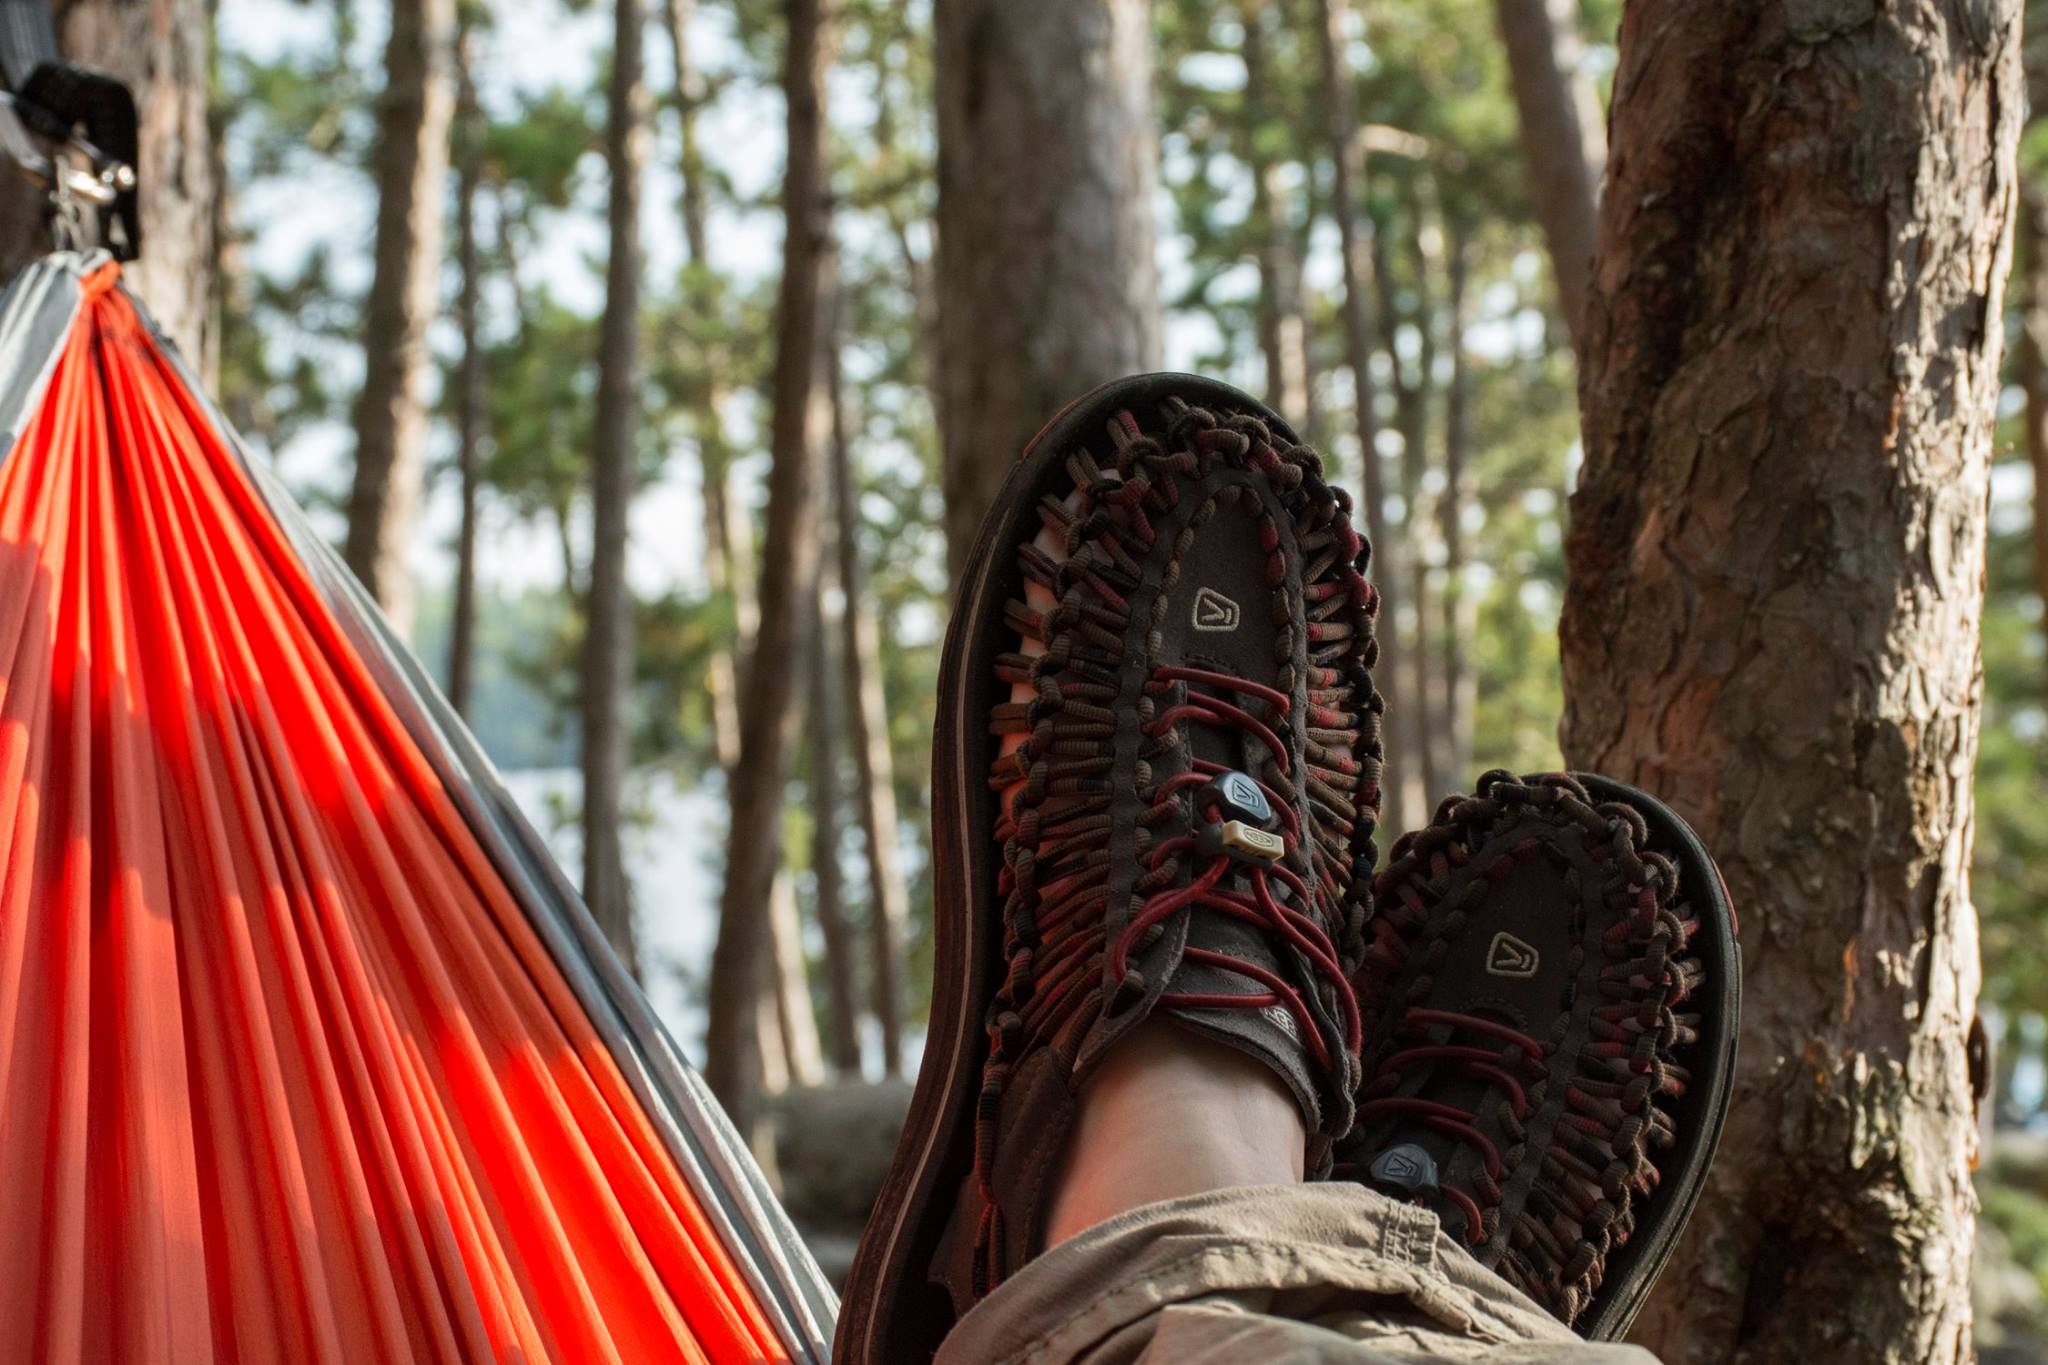 FALL CLINIC SERIES - HAMMOCK CAMPING 101